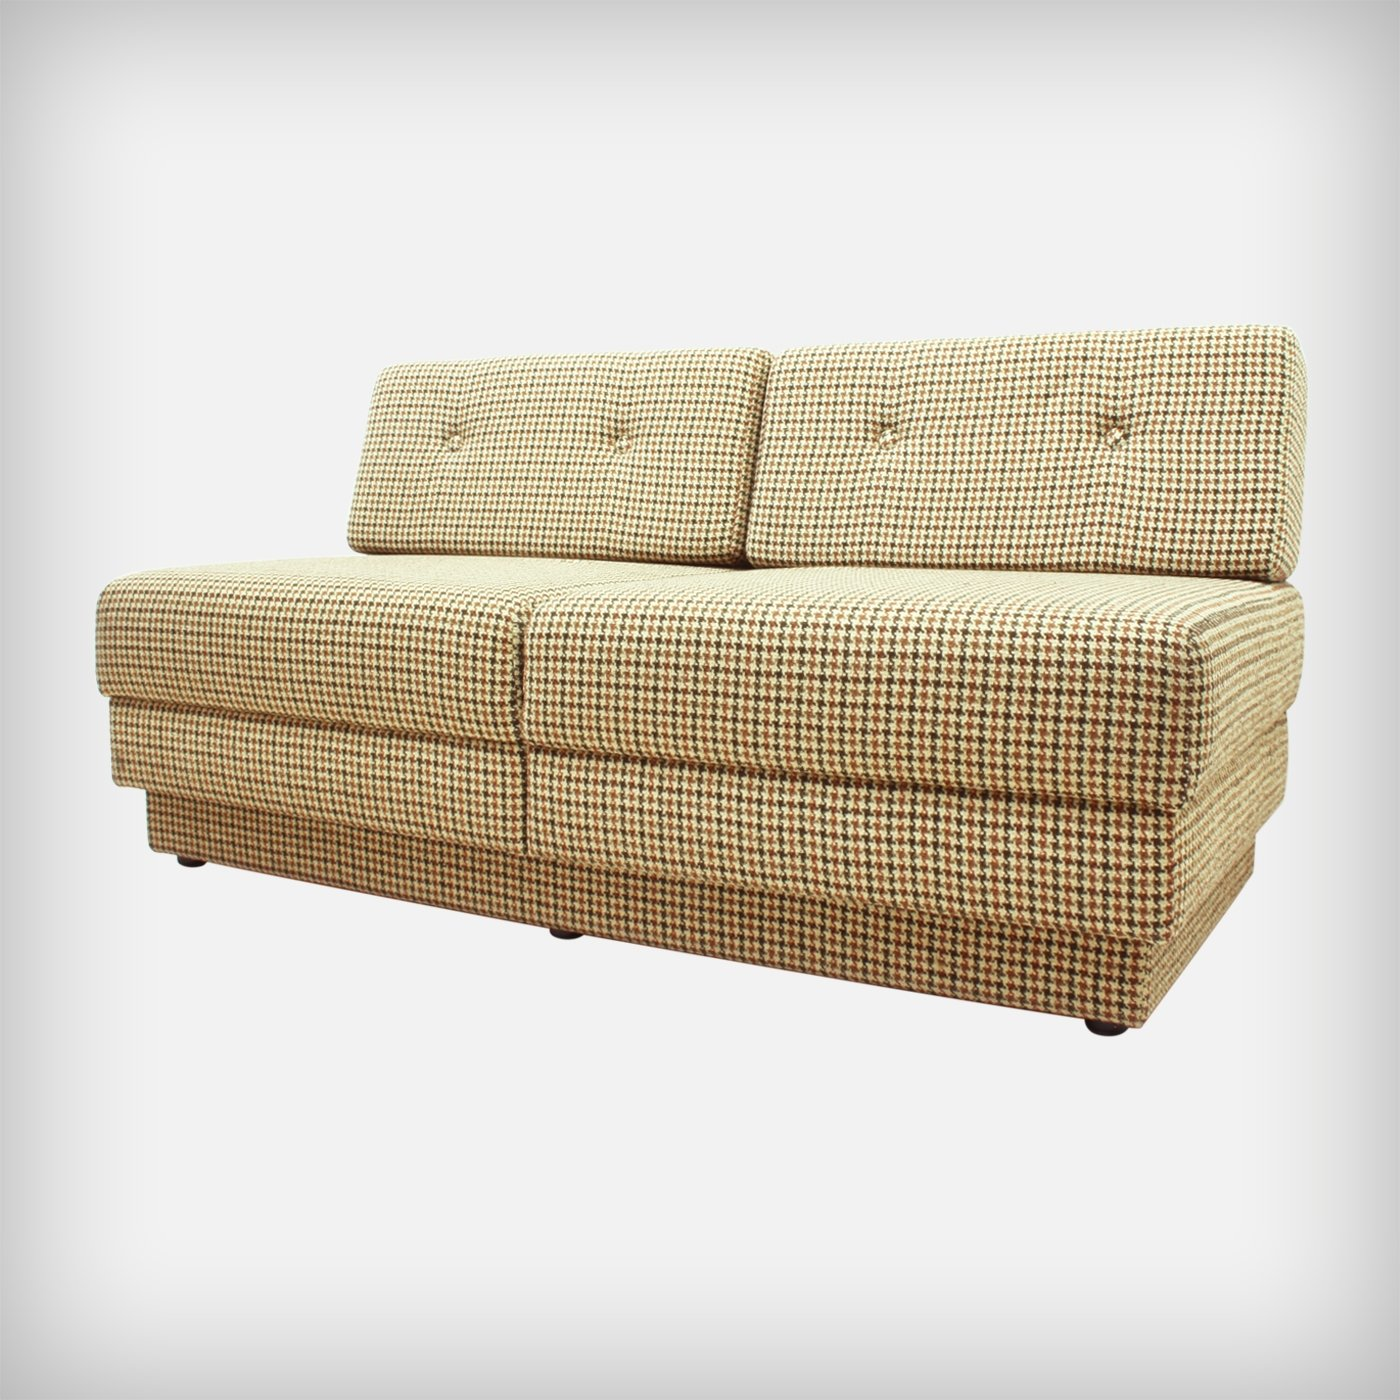 German Extendible Checked Wool Fabric Sofa Daybed With Integrated Table 1970s